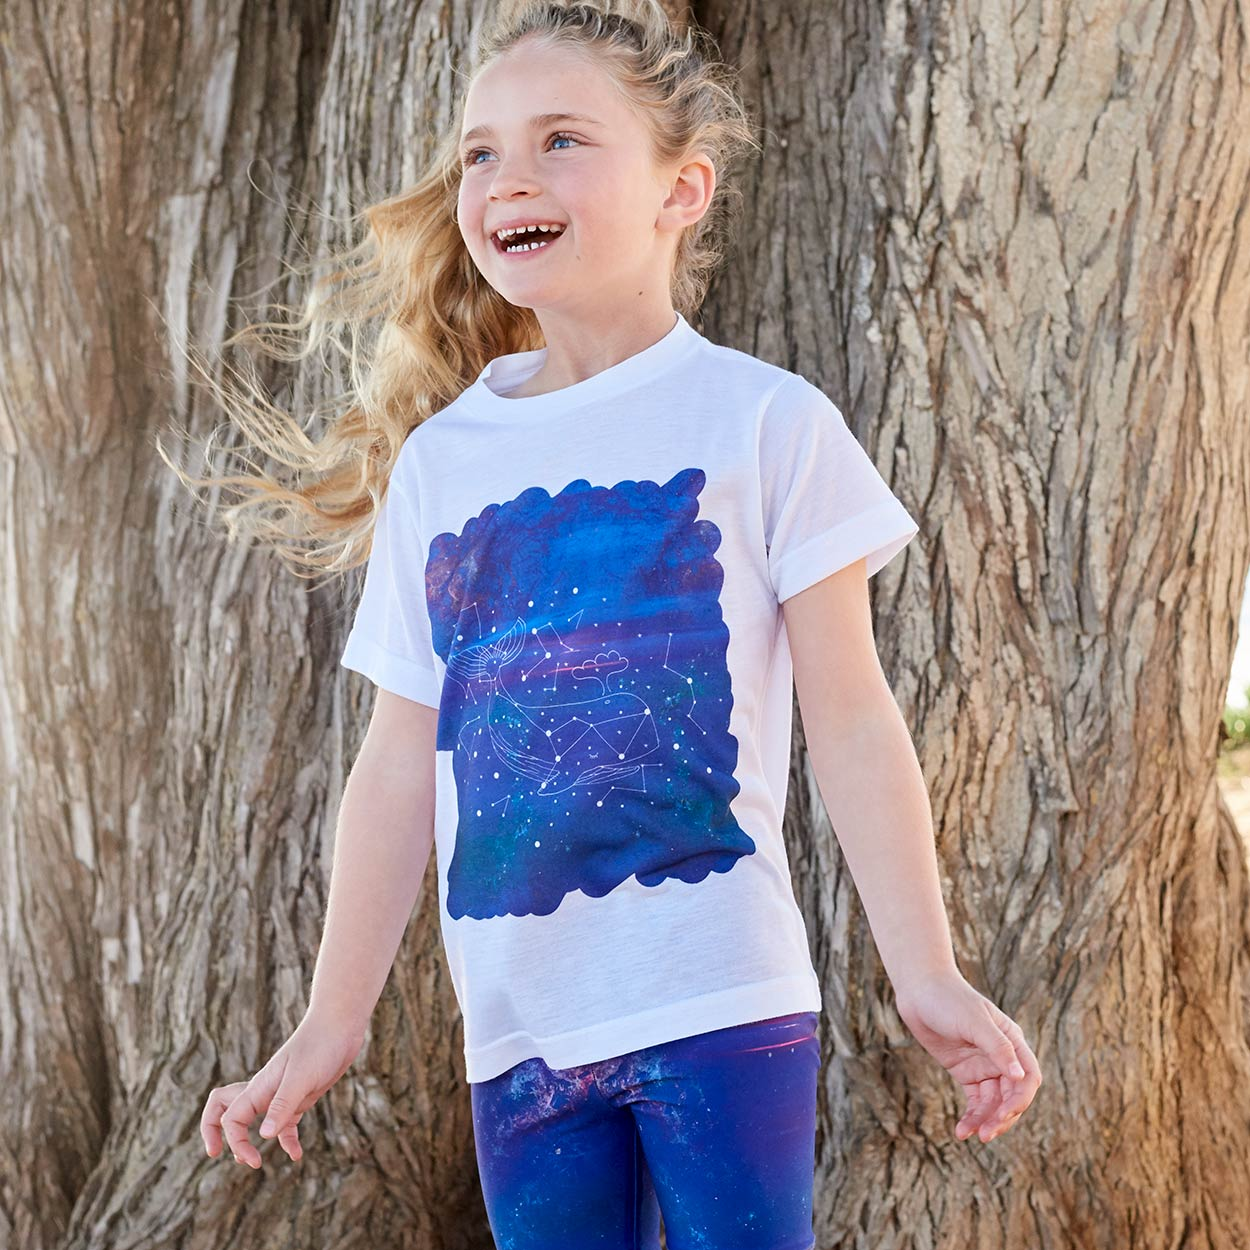 Kids Whale Graphic Tshirt Size Xs L White Purple Unisex Cosmos Cetus Constellations Surfer Girl Smiling In Front Of A Brown Tree Sunpoplife